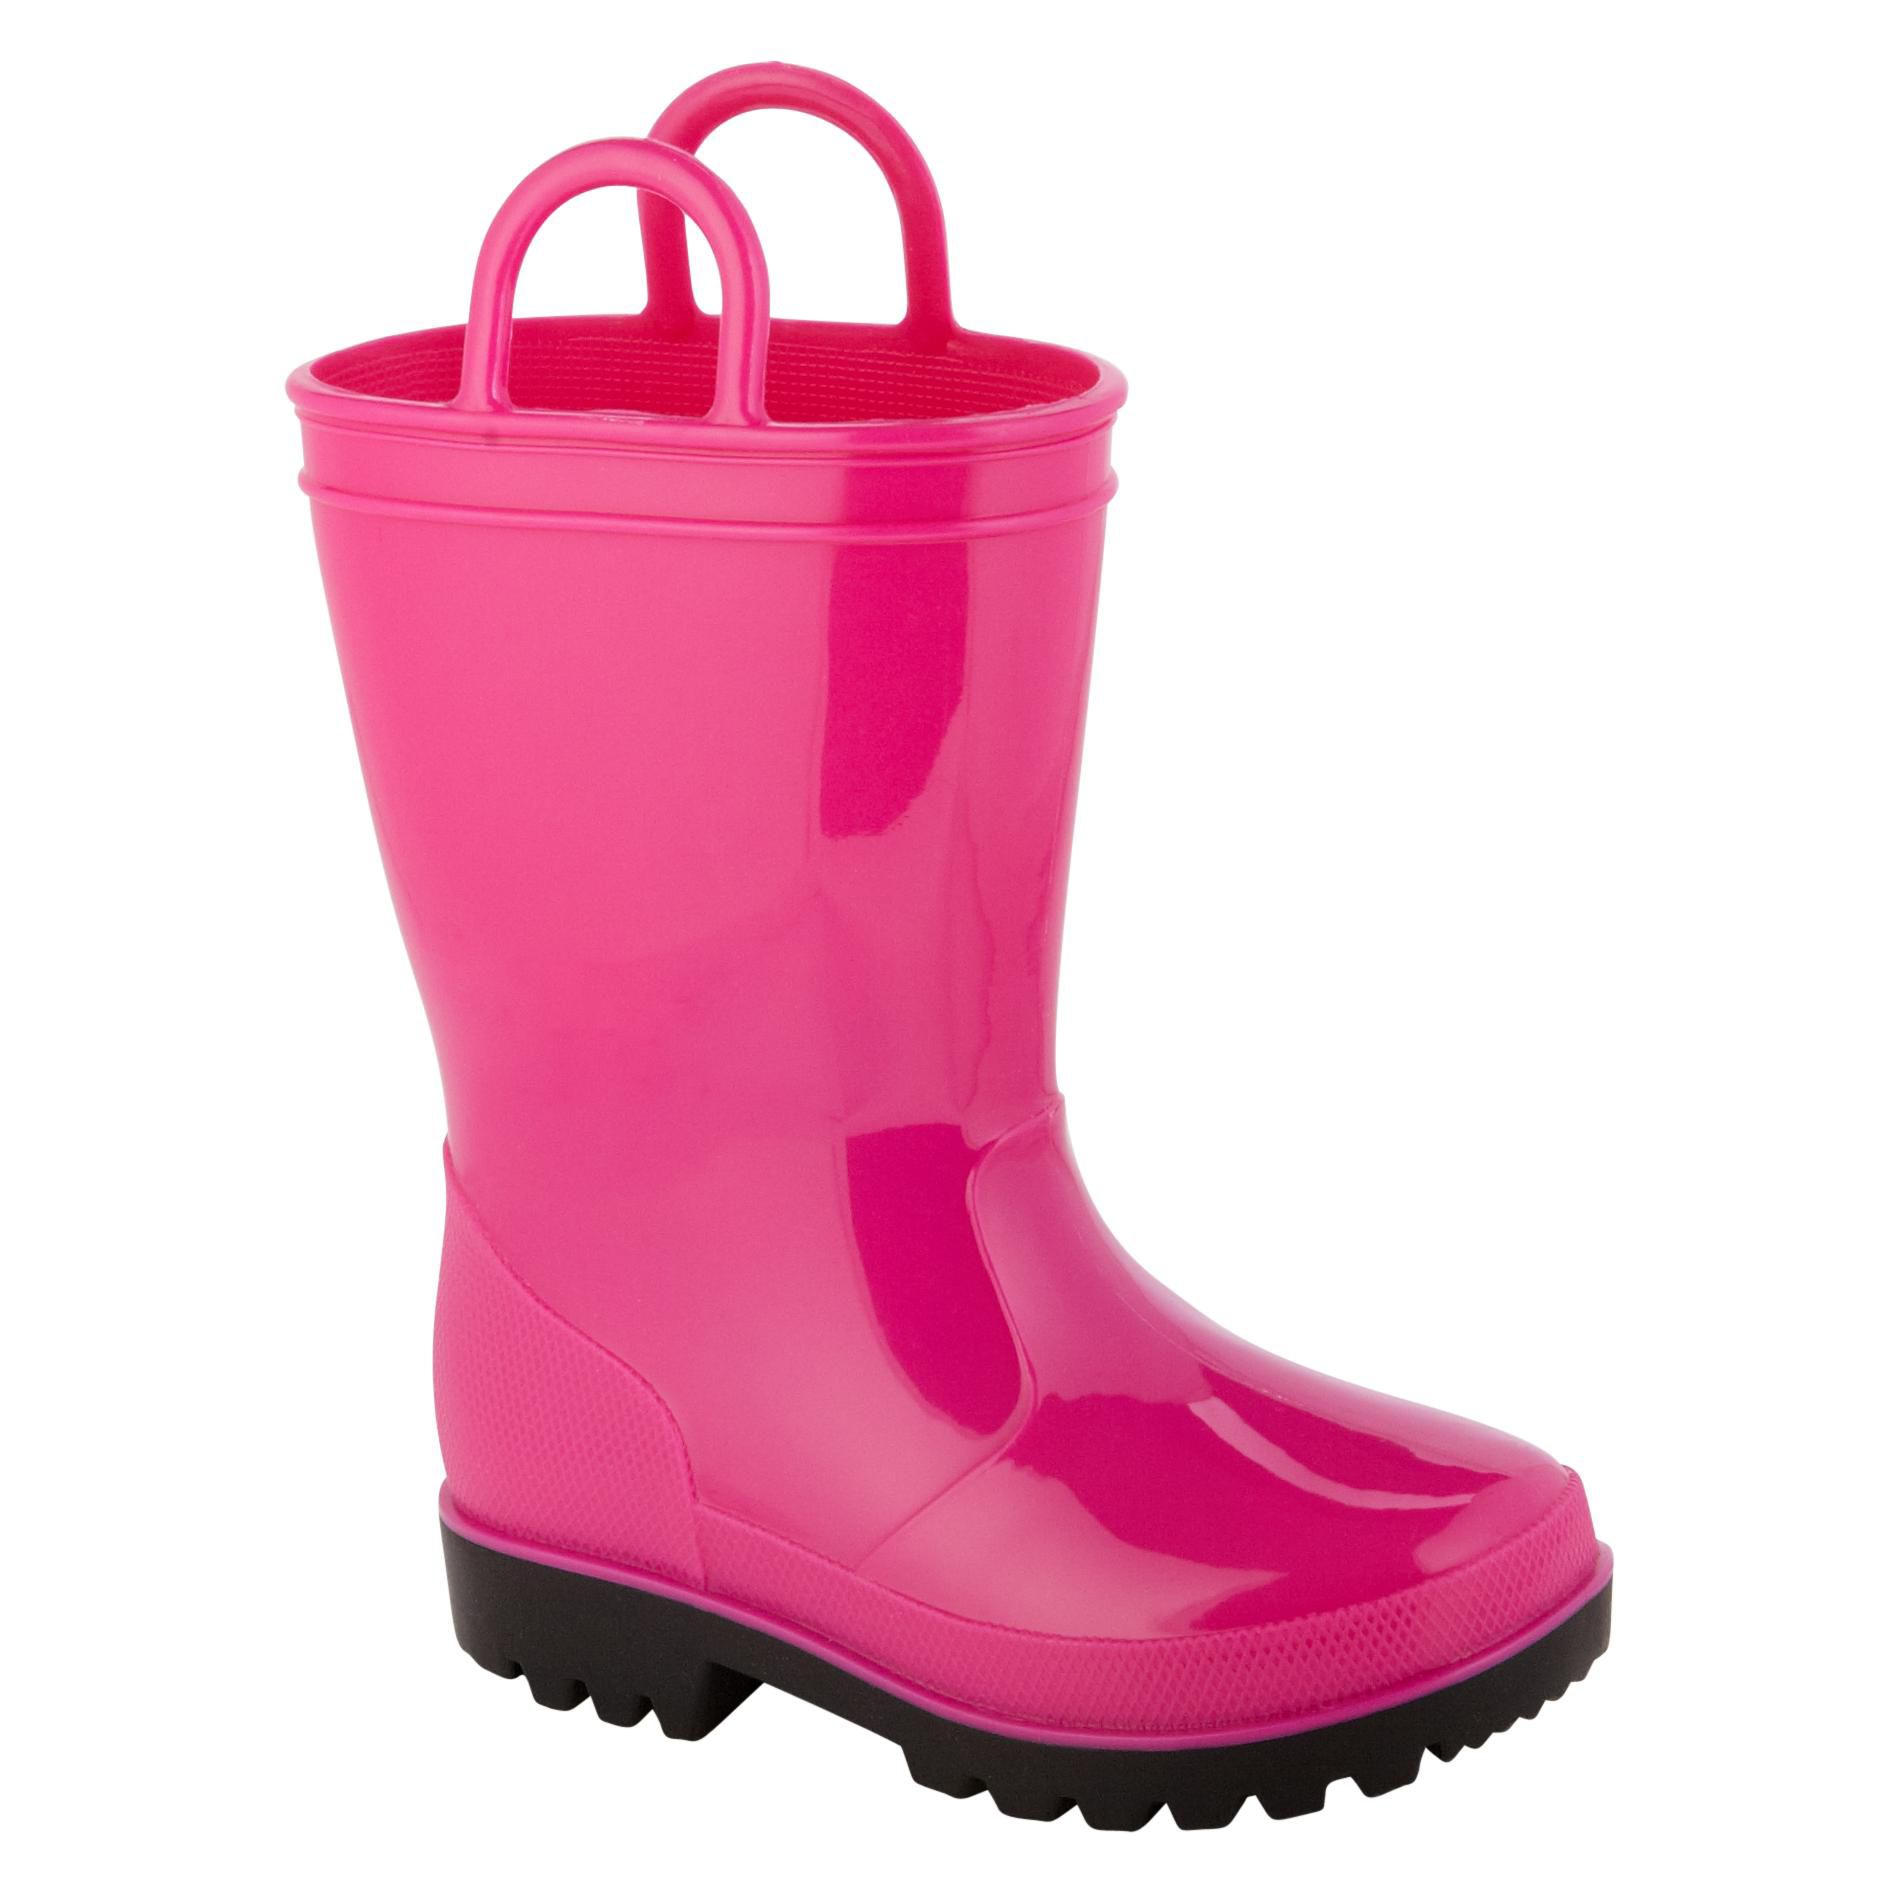 Joe Boxer  Toddler Arcade Rain Boot - Pink